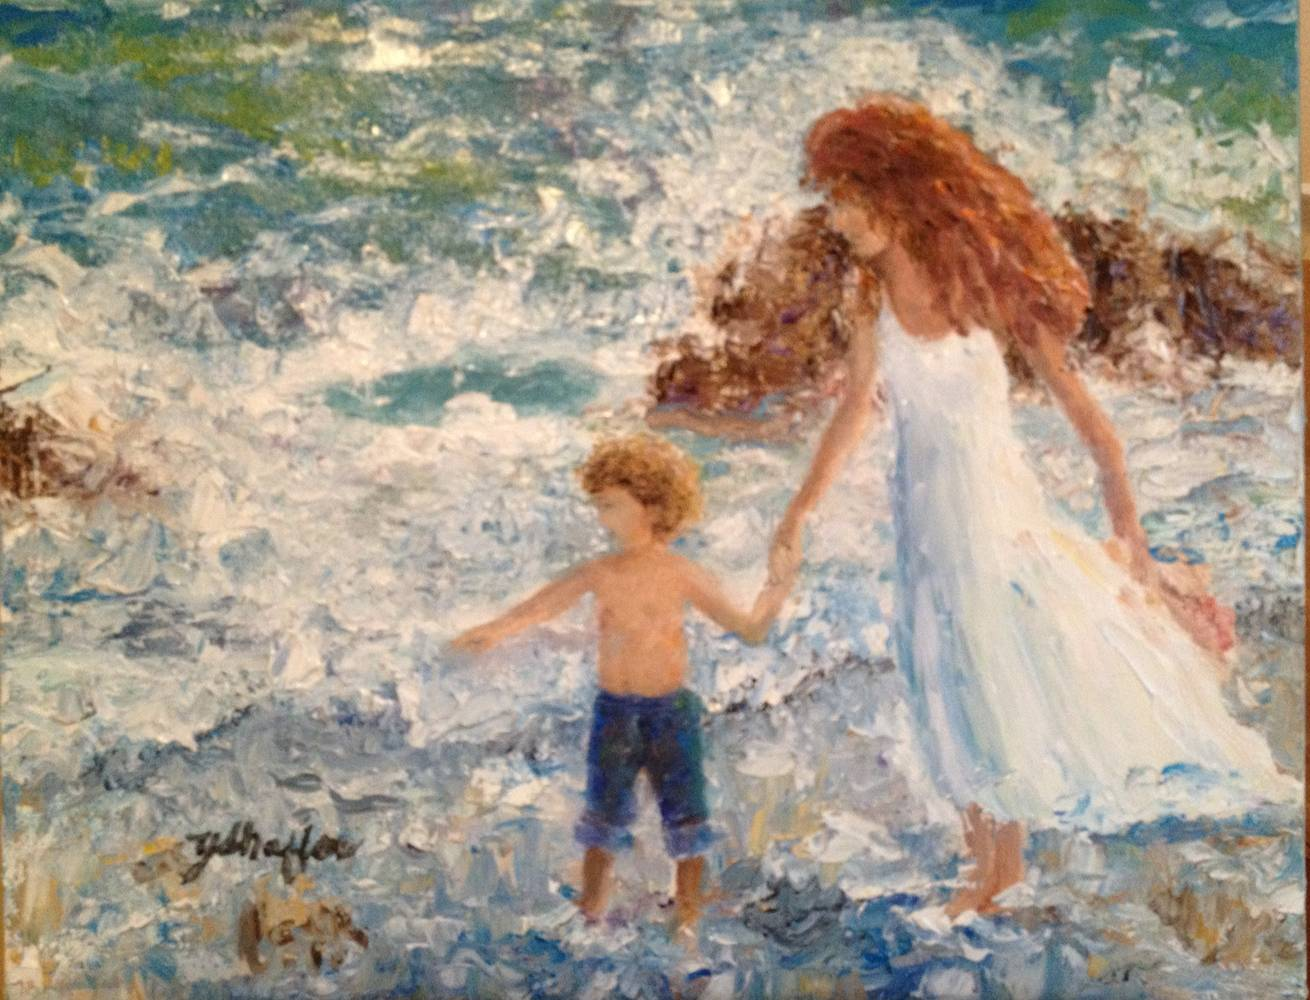 Oil painting Seaside Discoveries by Yvonne Shaffer